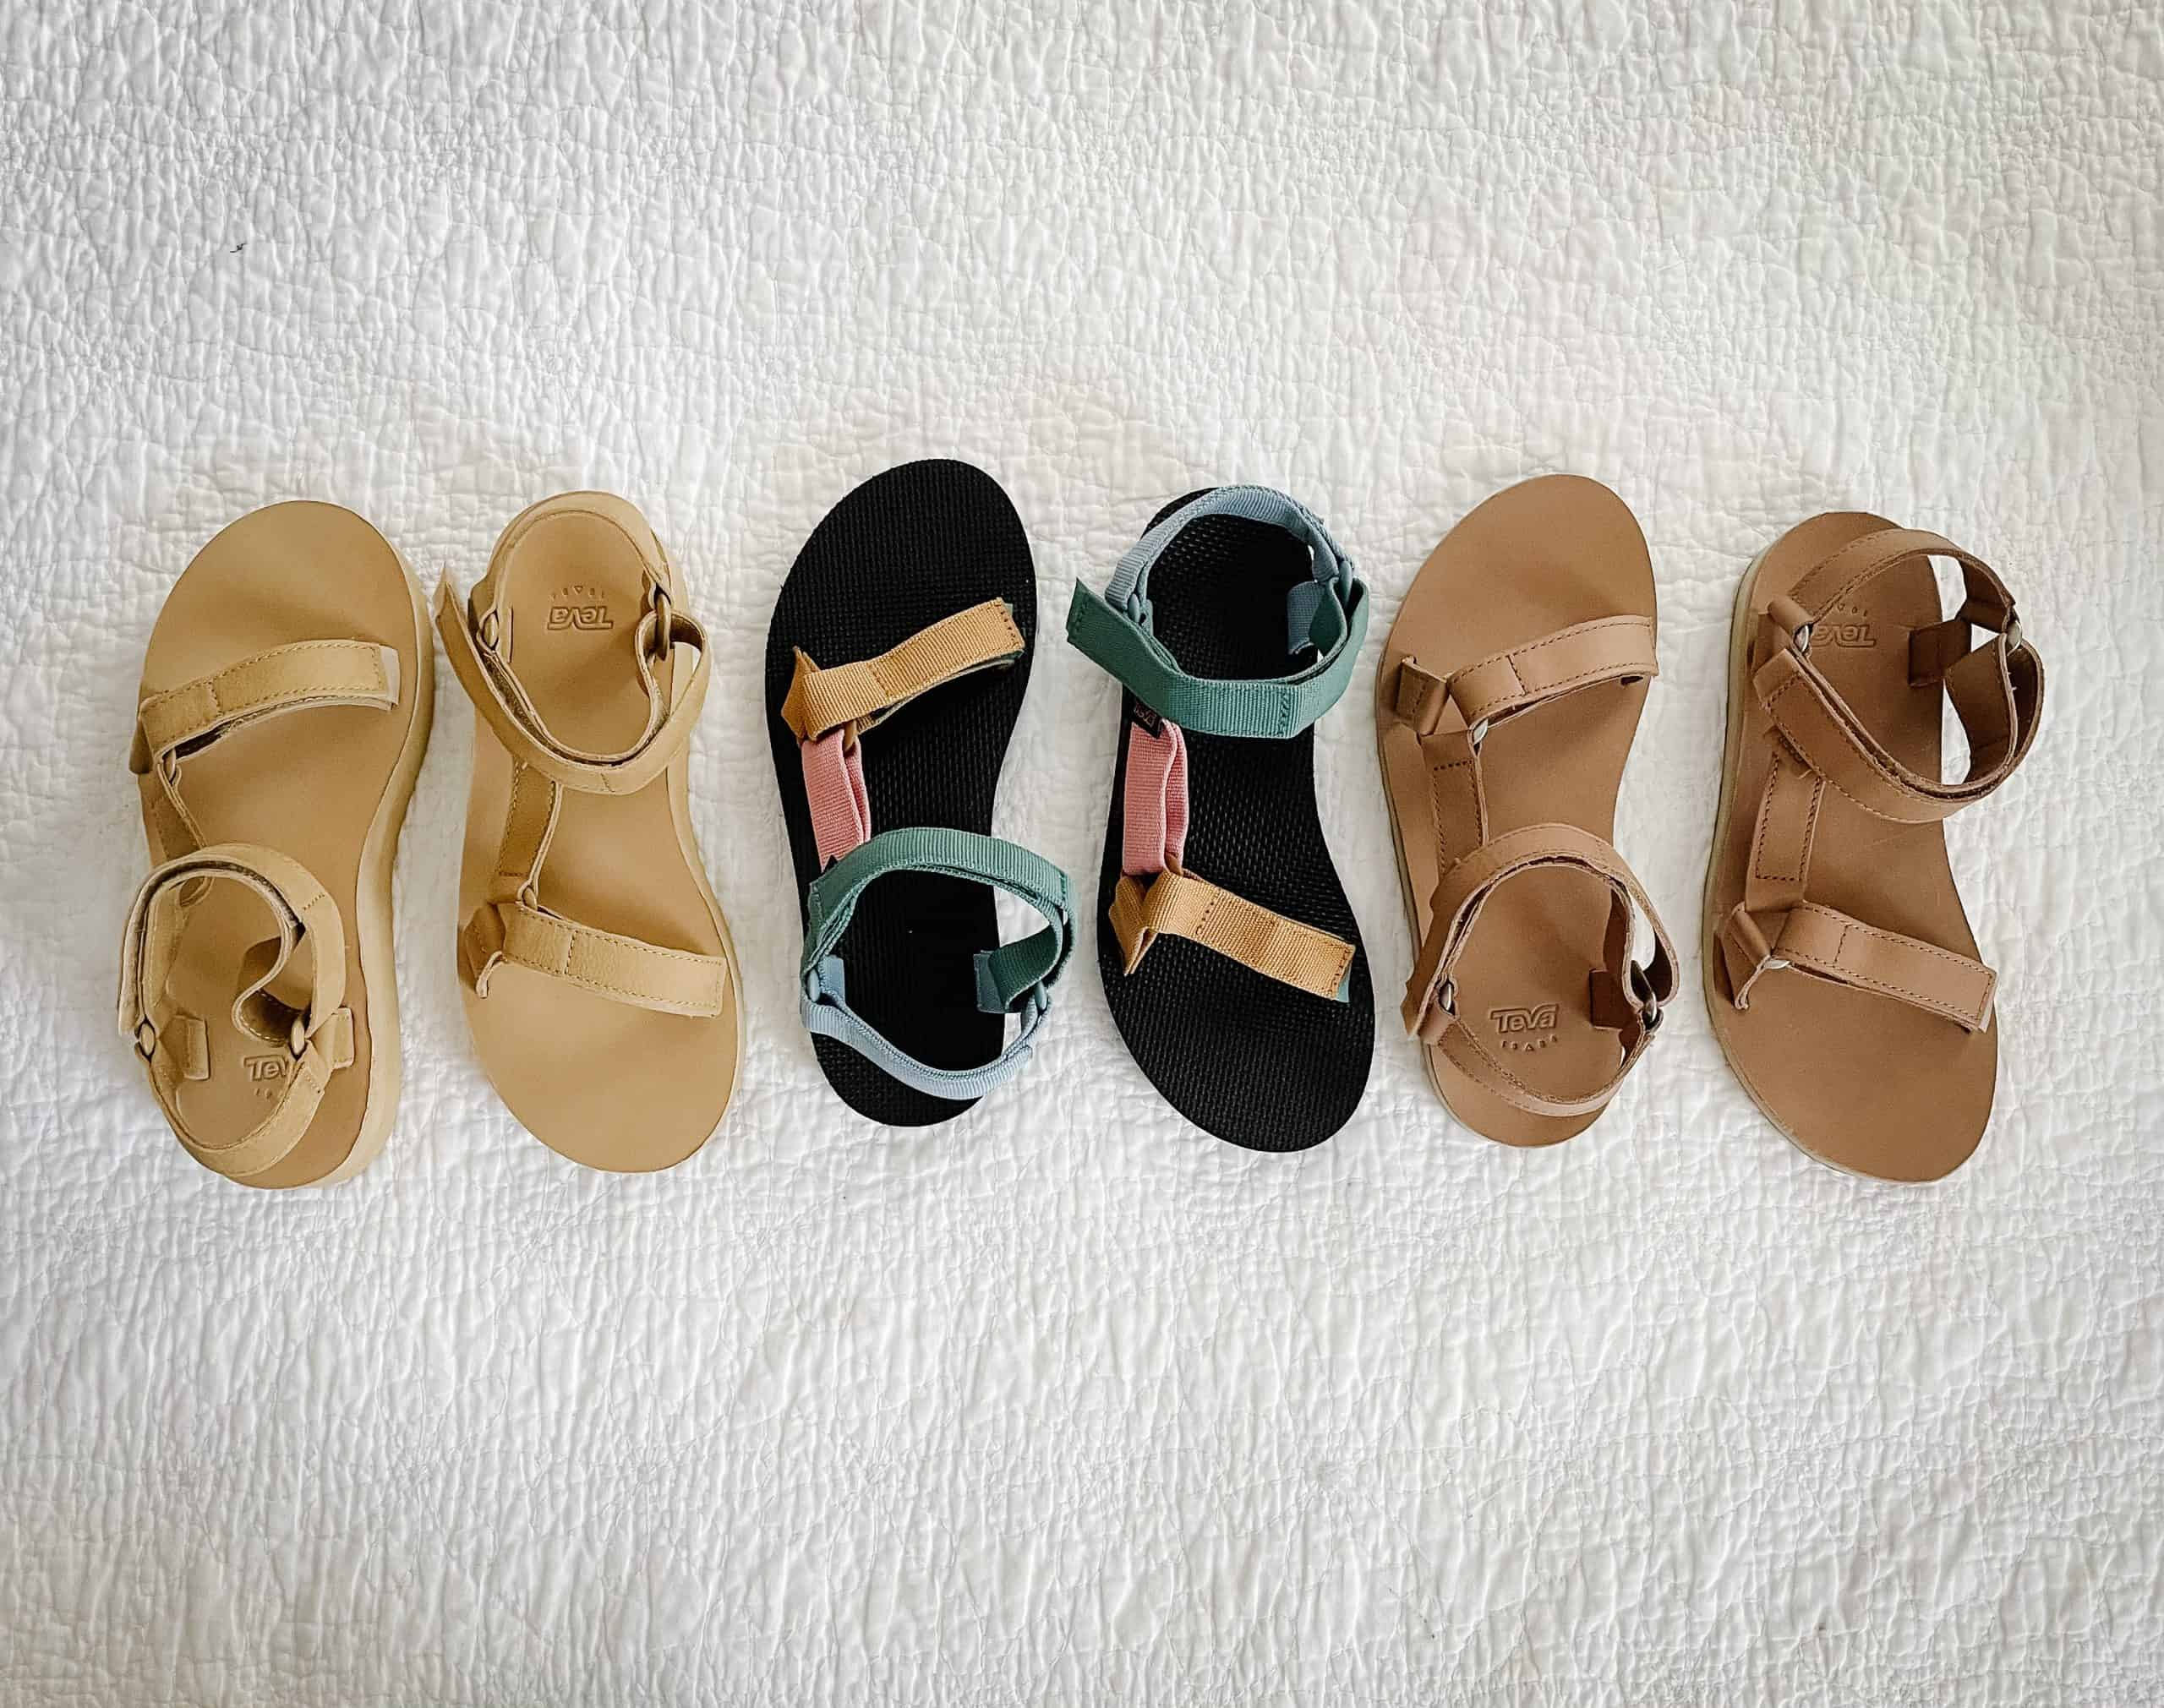 Summer is for Sandals